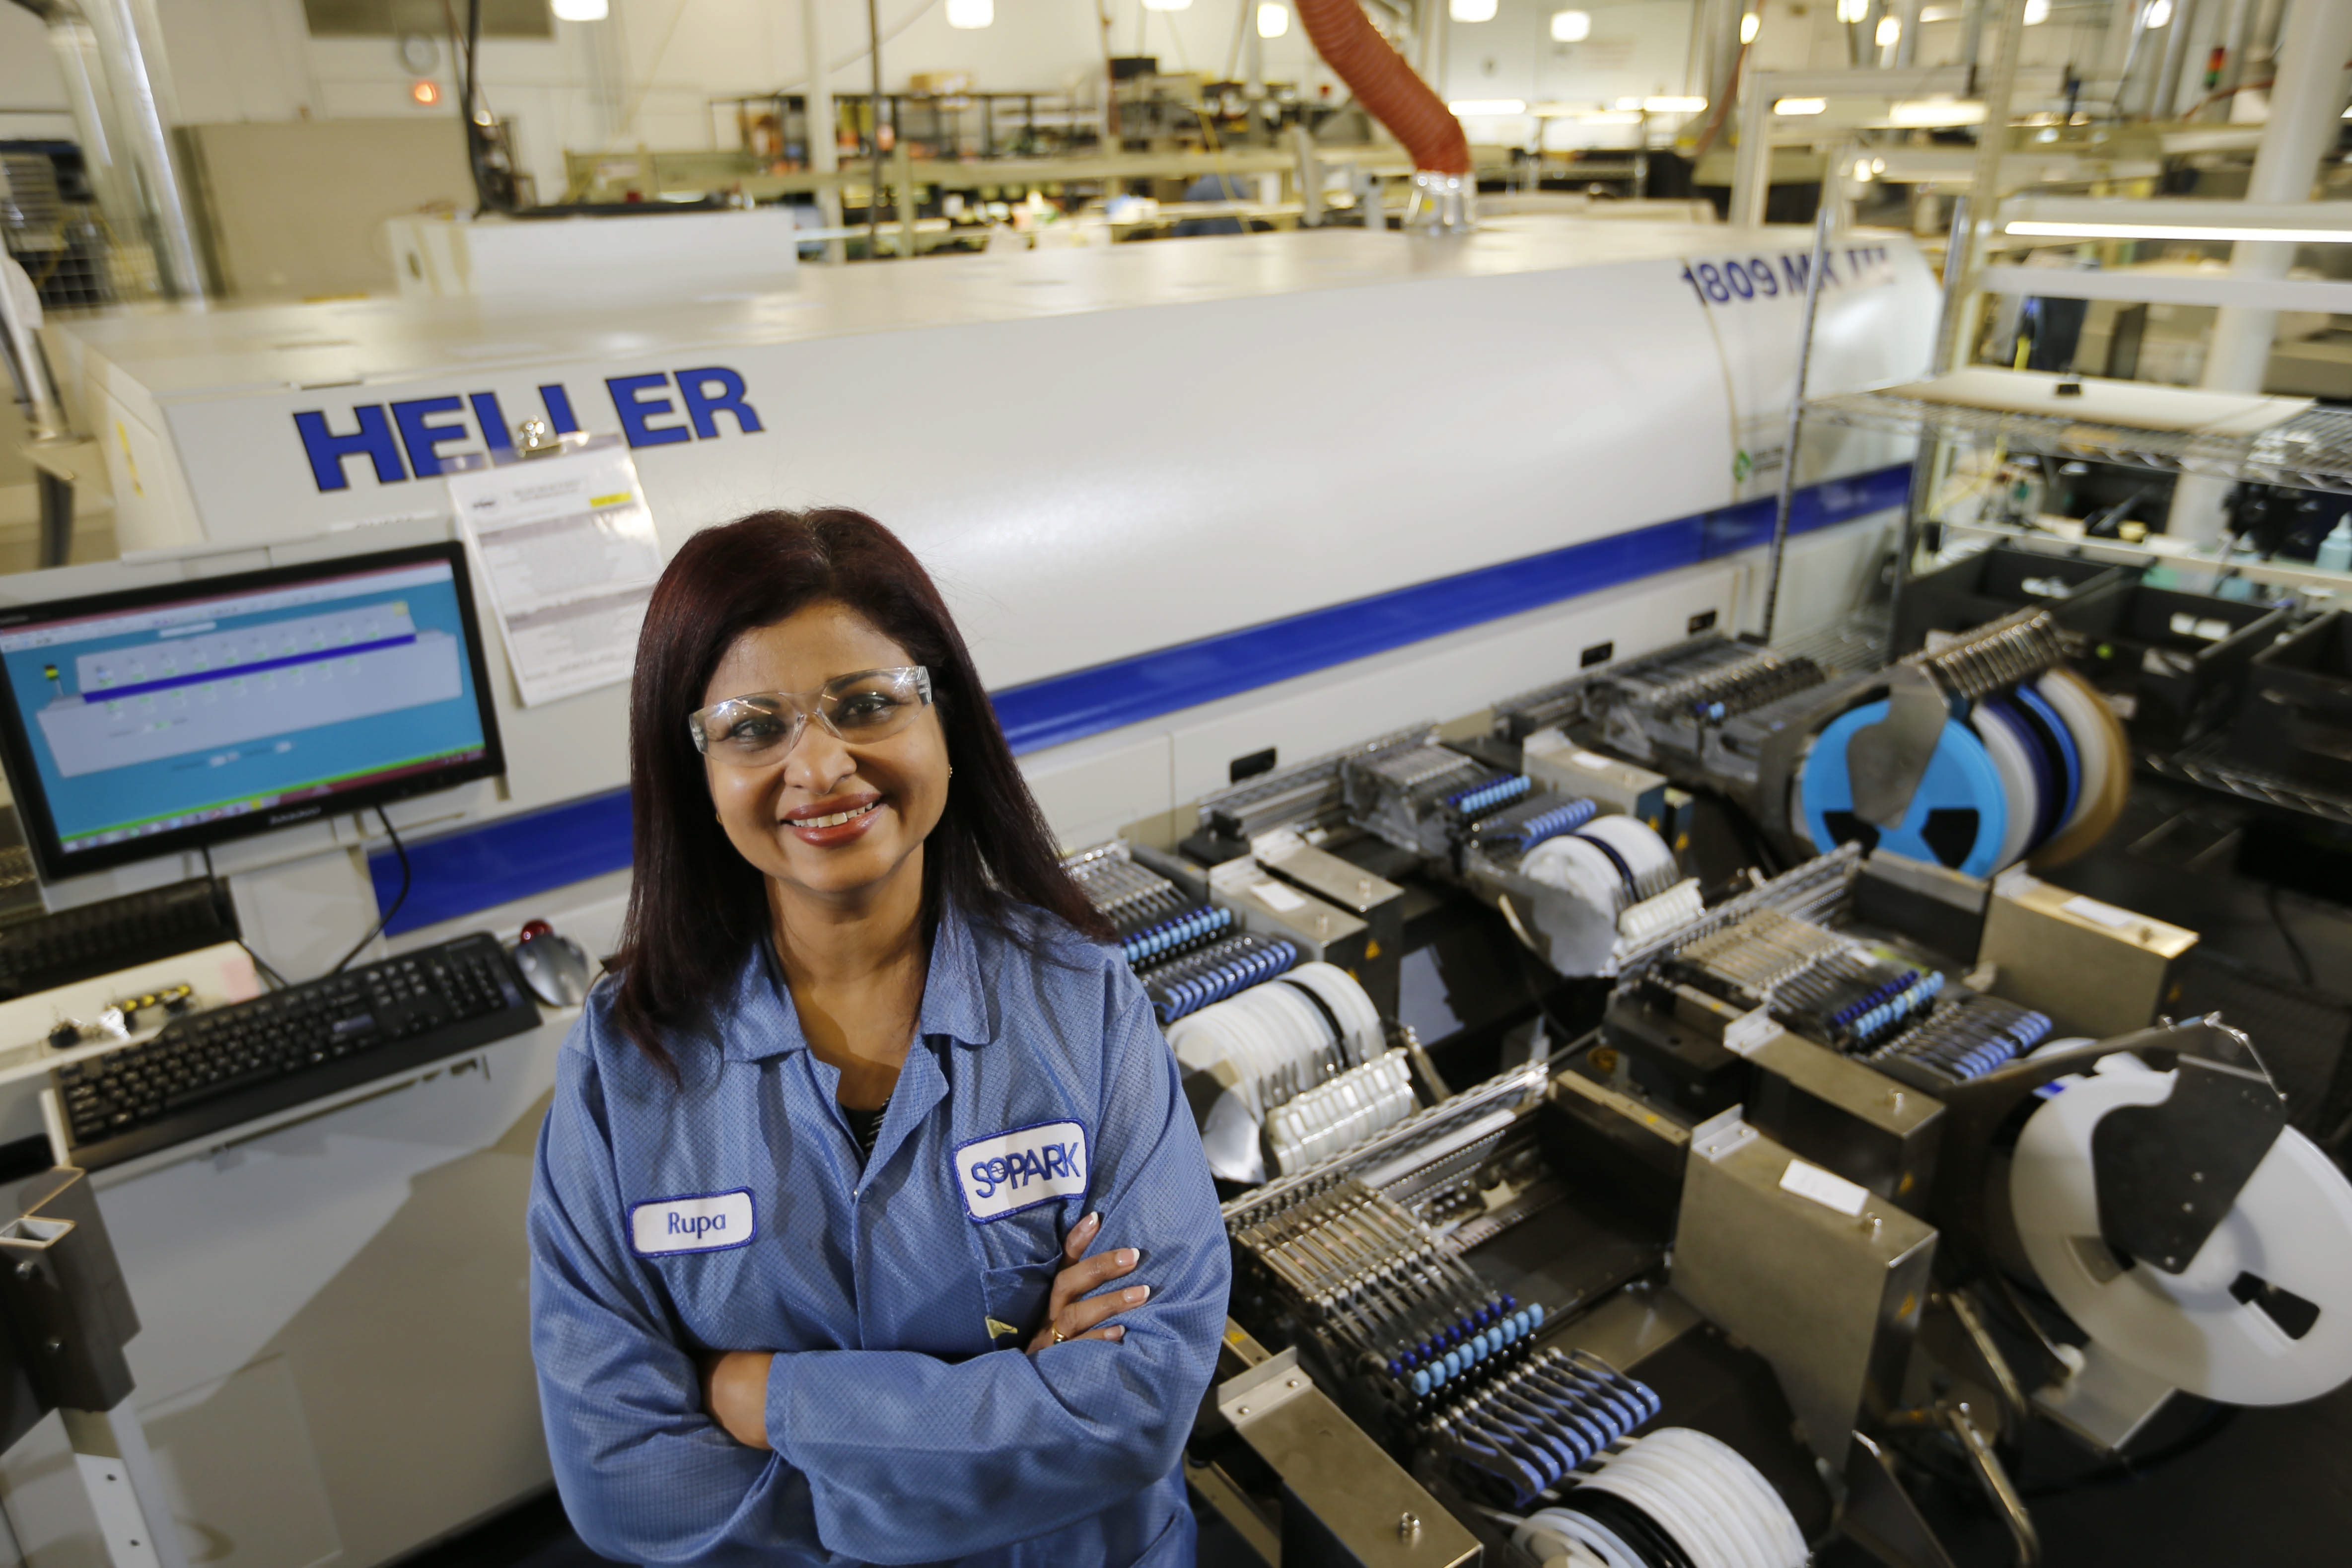 Rupa Shanmugam, president and COO of SoPark Corp. in Lackawanna, is committed to women's issues and encouraging young women to follow in her footsteps. She has arranged for girls from area high schools to tour the contract manufacturing facility.